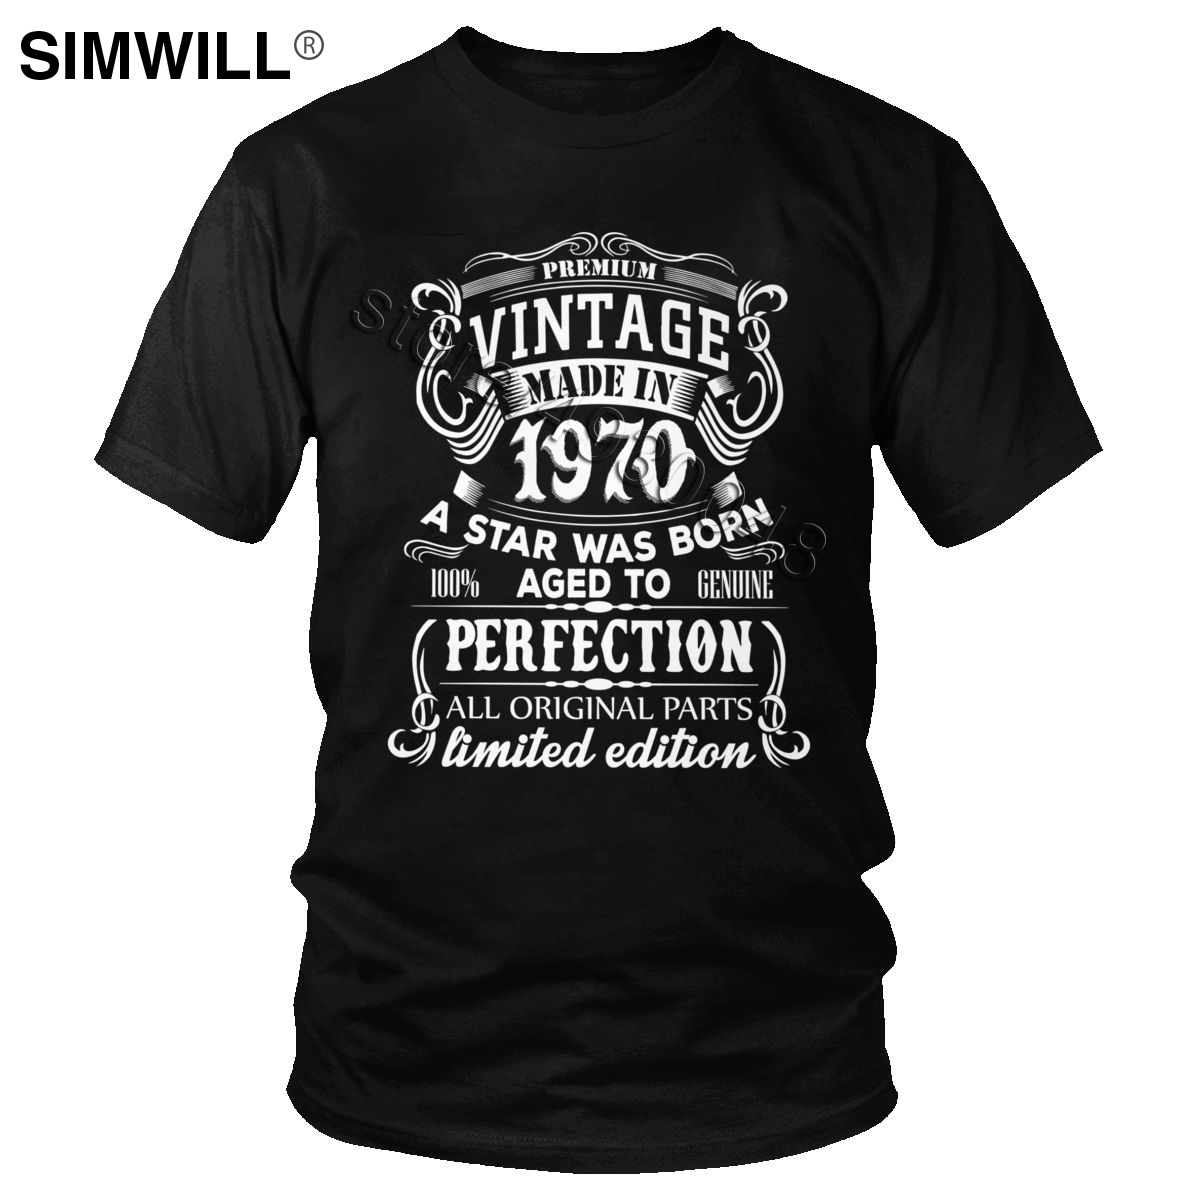 Vintage Made In 1970 50 Years Old T Shirt Men 100% Cotton T-Shirt Short Sleeve 50th Birthday Gift Tee Born In 1970 Tshirt Tops